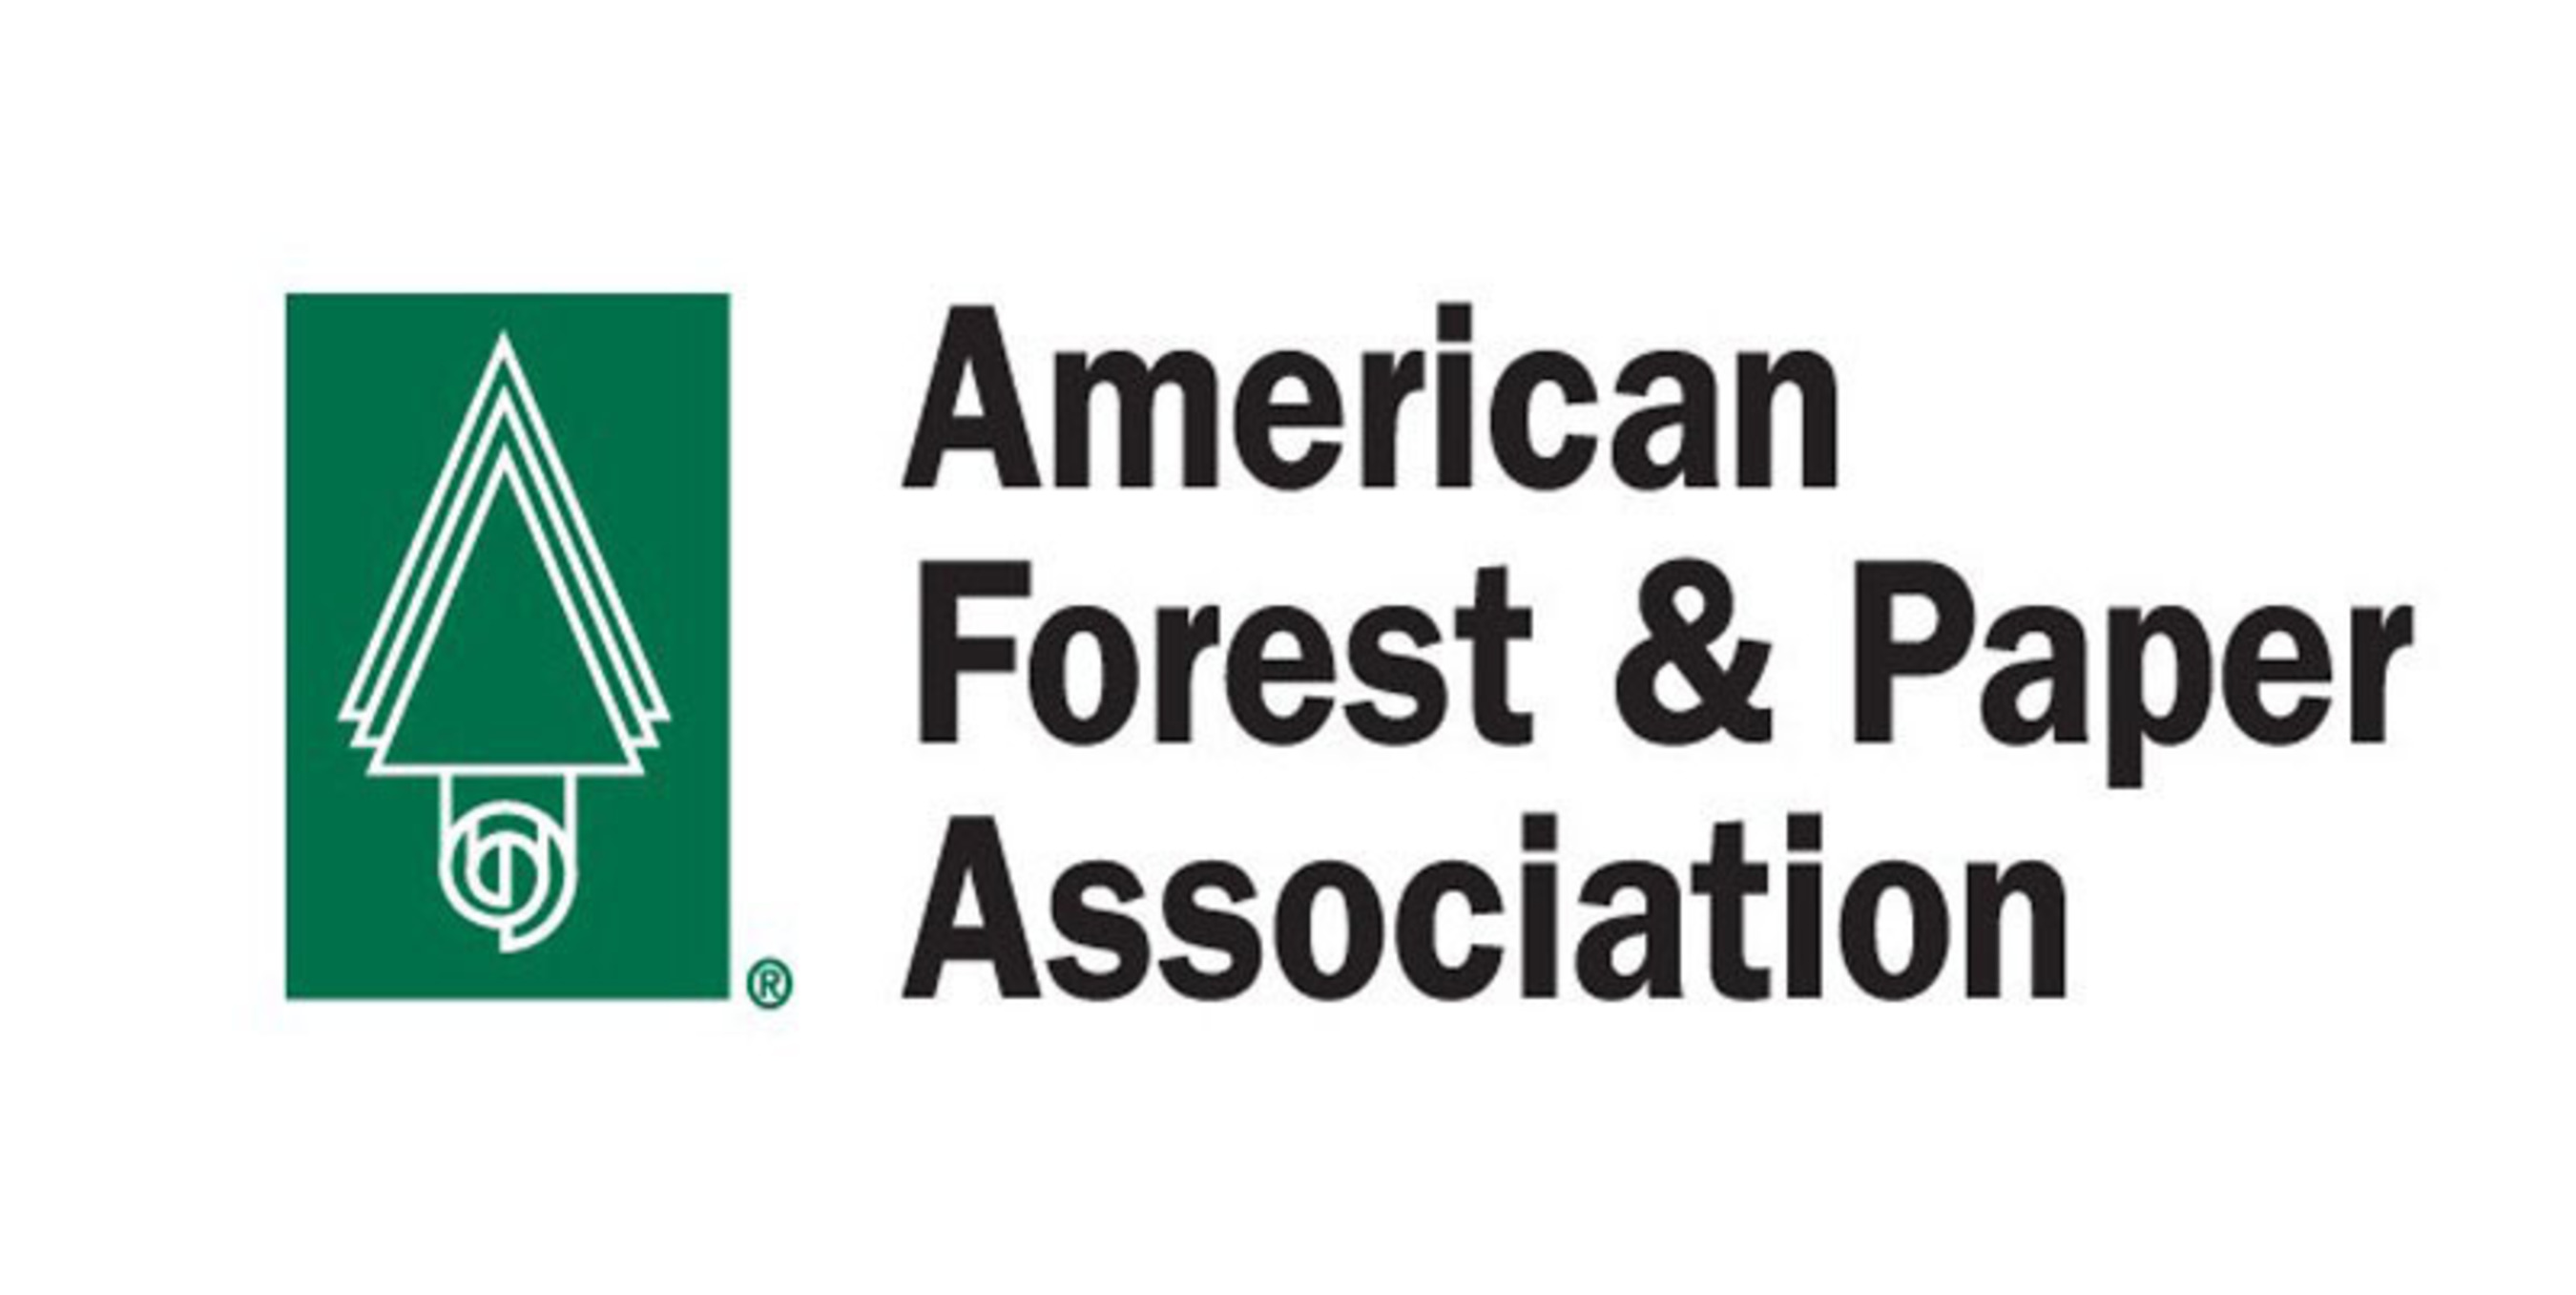 American Forest & Paper Association Logo.